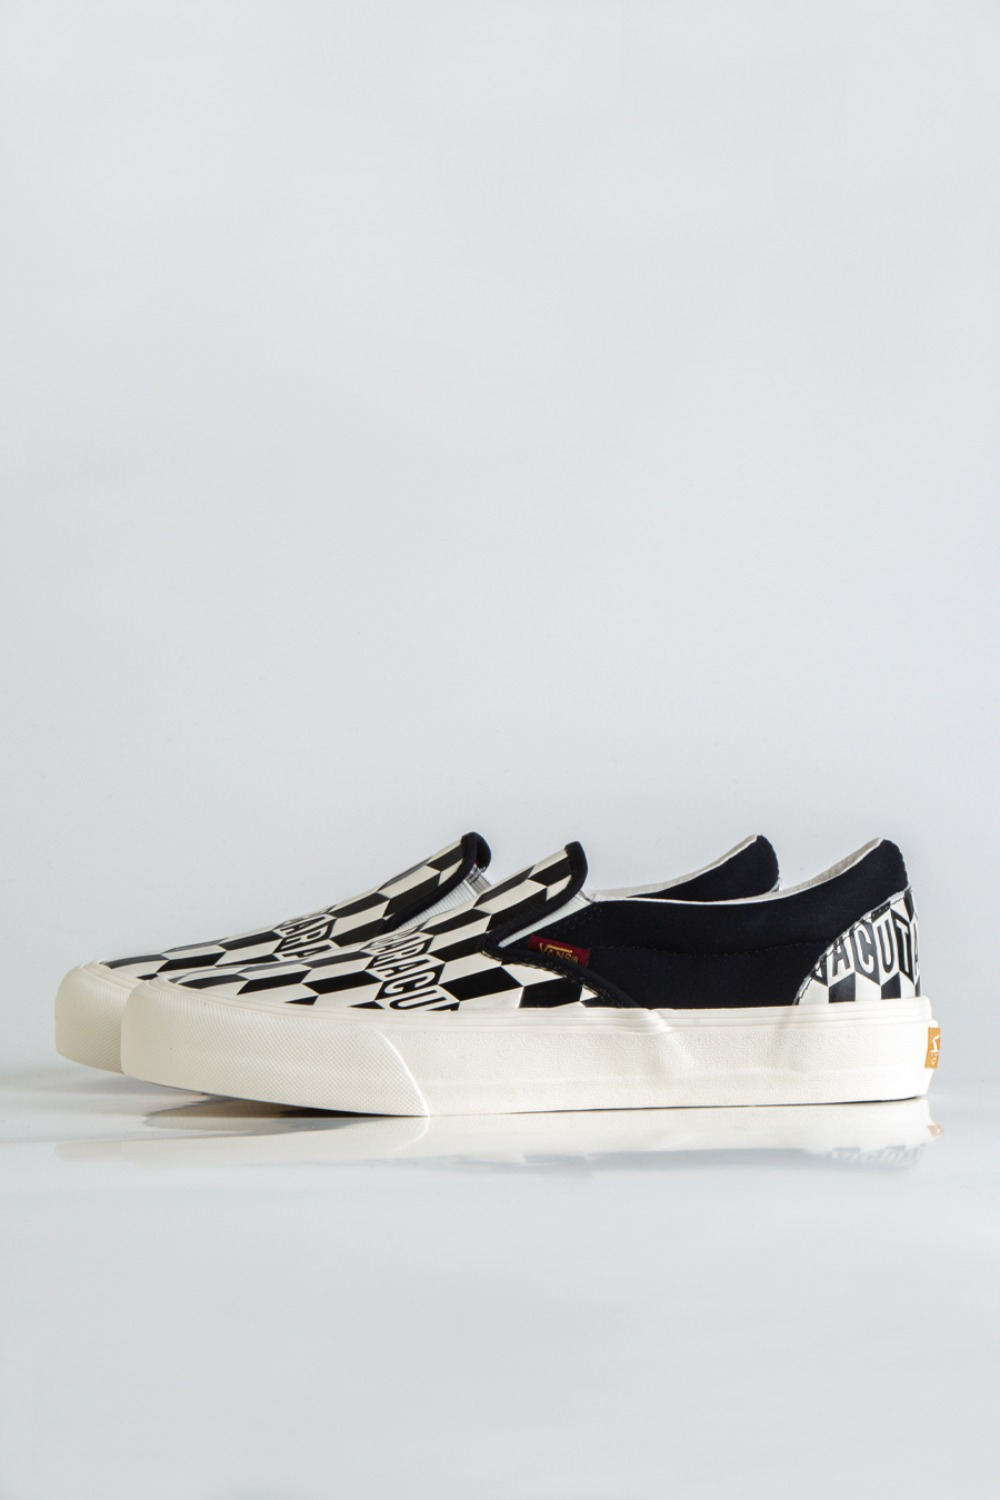 CLASSIC SLIP-ON VLT LX(BARACUTA) BLACK CHECKERBOARD/MARSHMALLOW